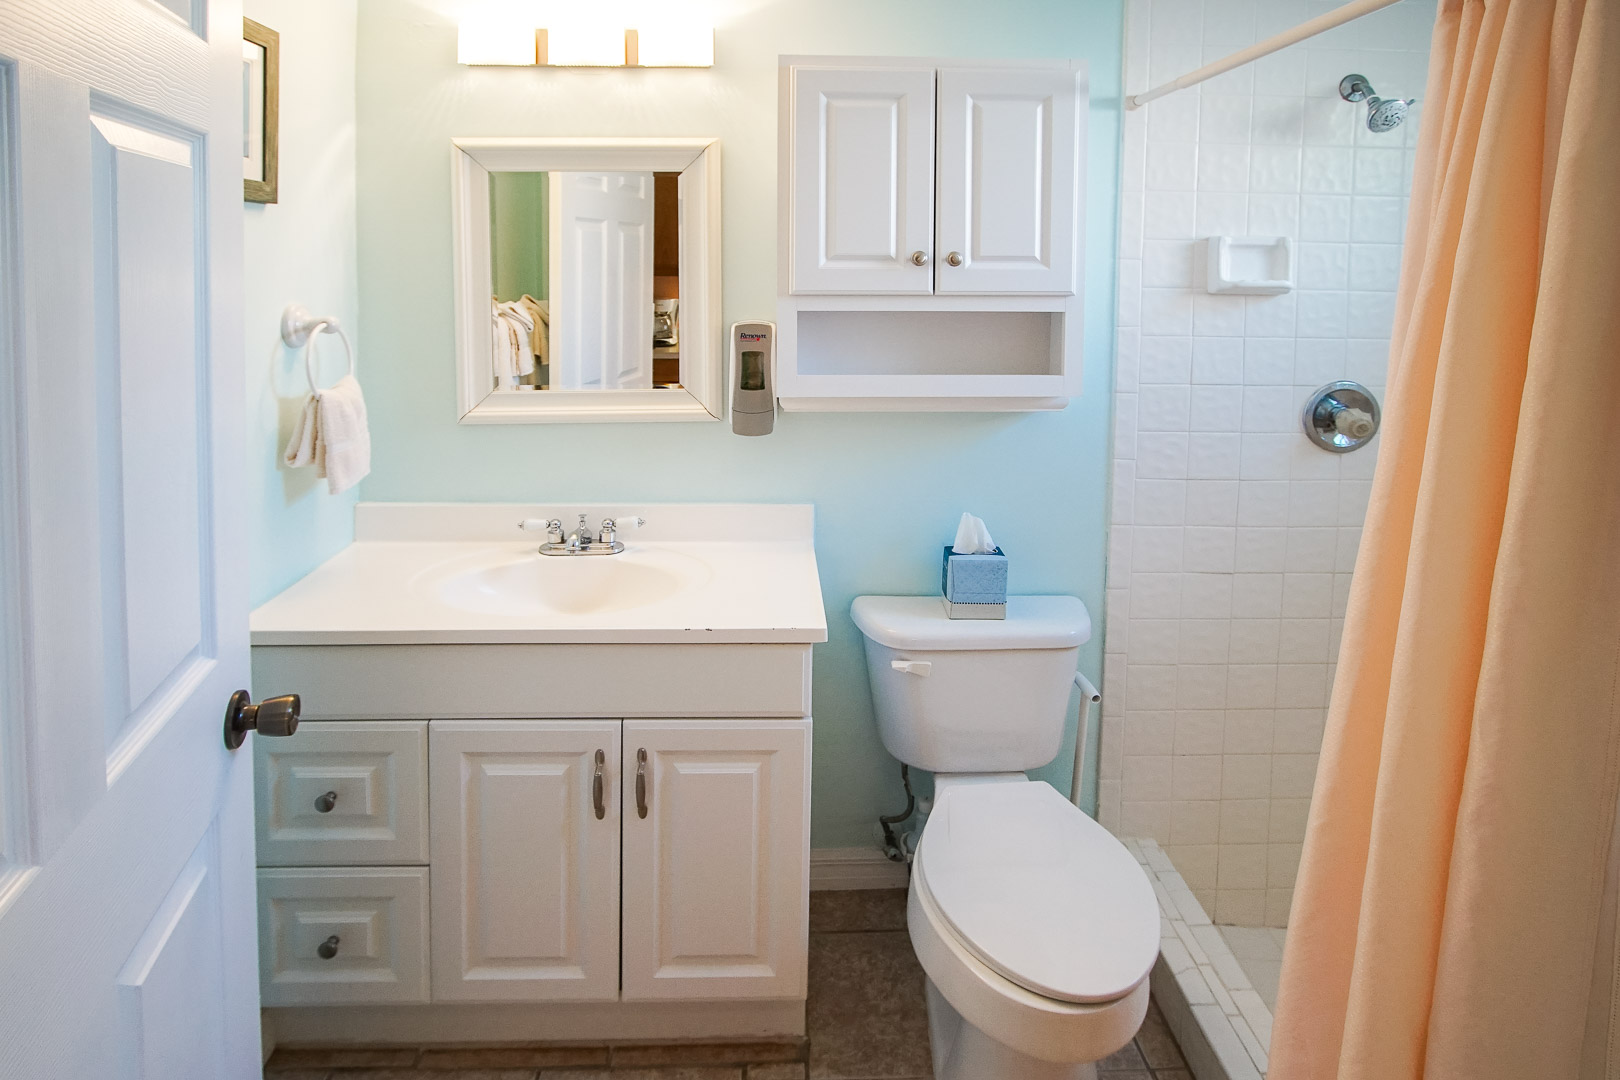 A clean bathroom at VRI's Sand Dune Shores in Florida.